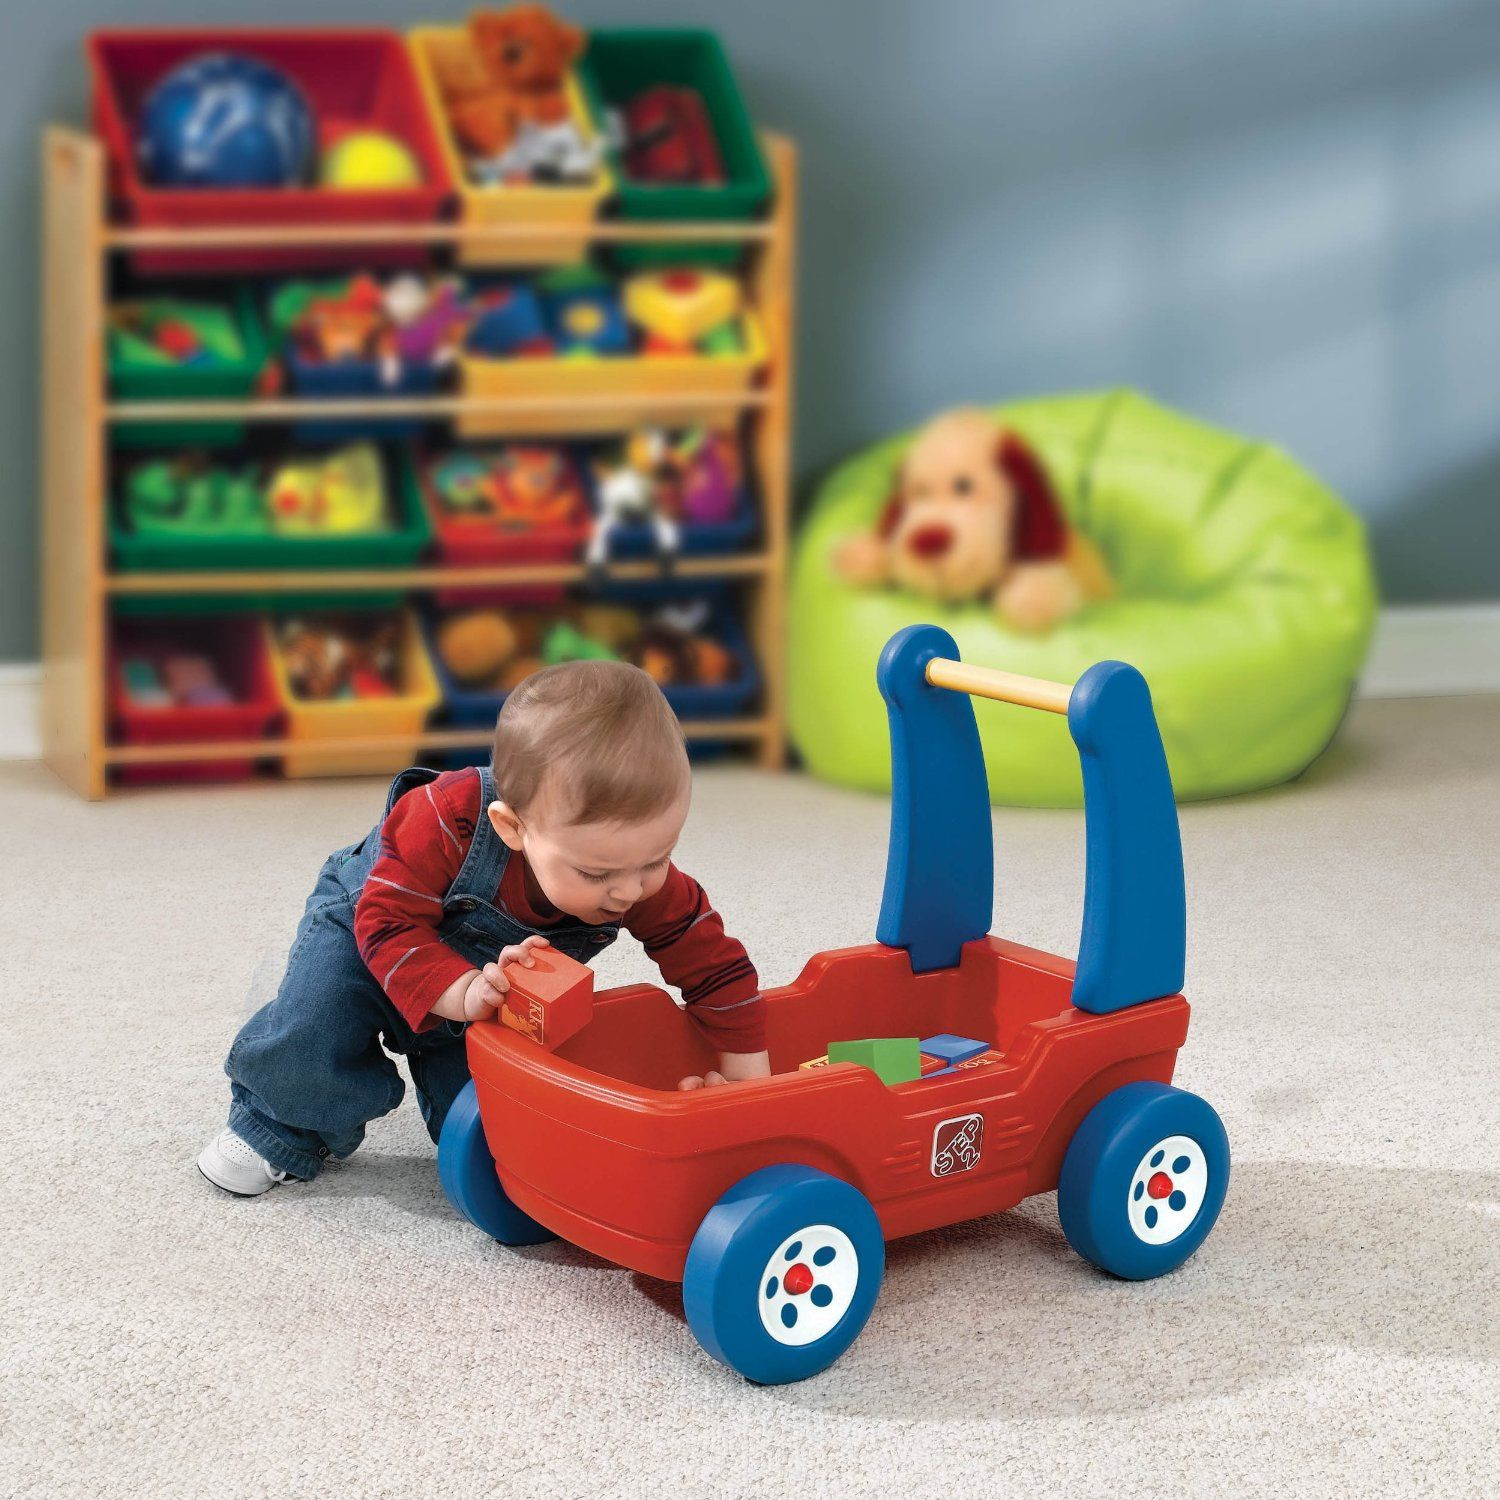 Gift Ideas For Baby First Birthday  Best rated bud friendly t ideas for one year old